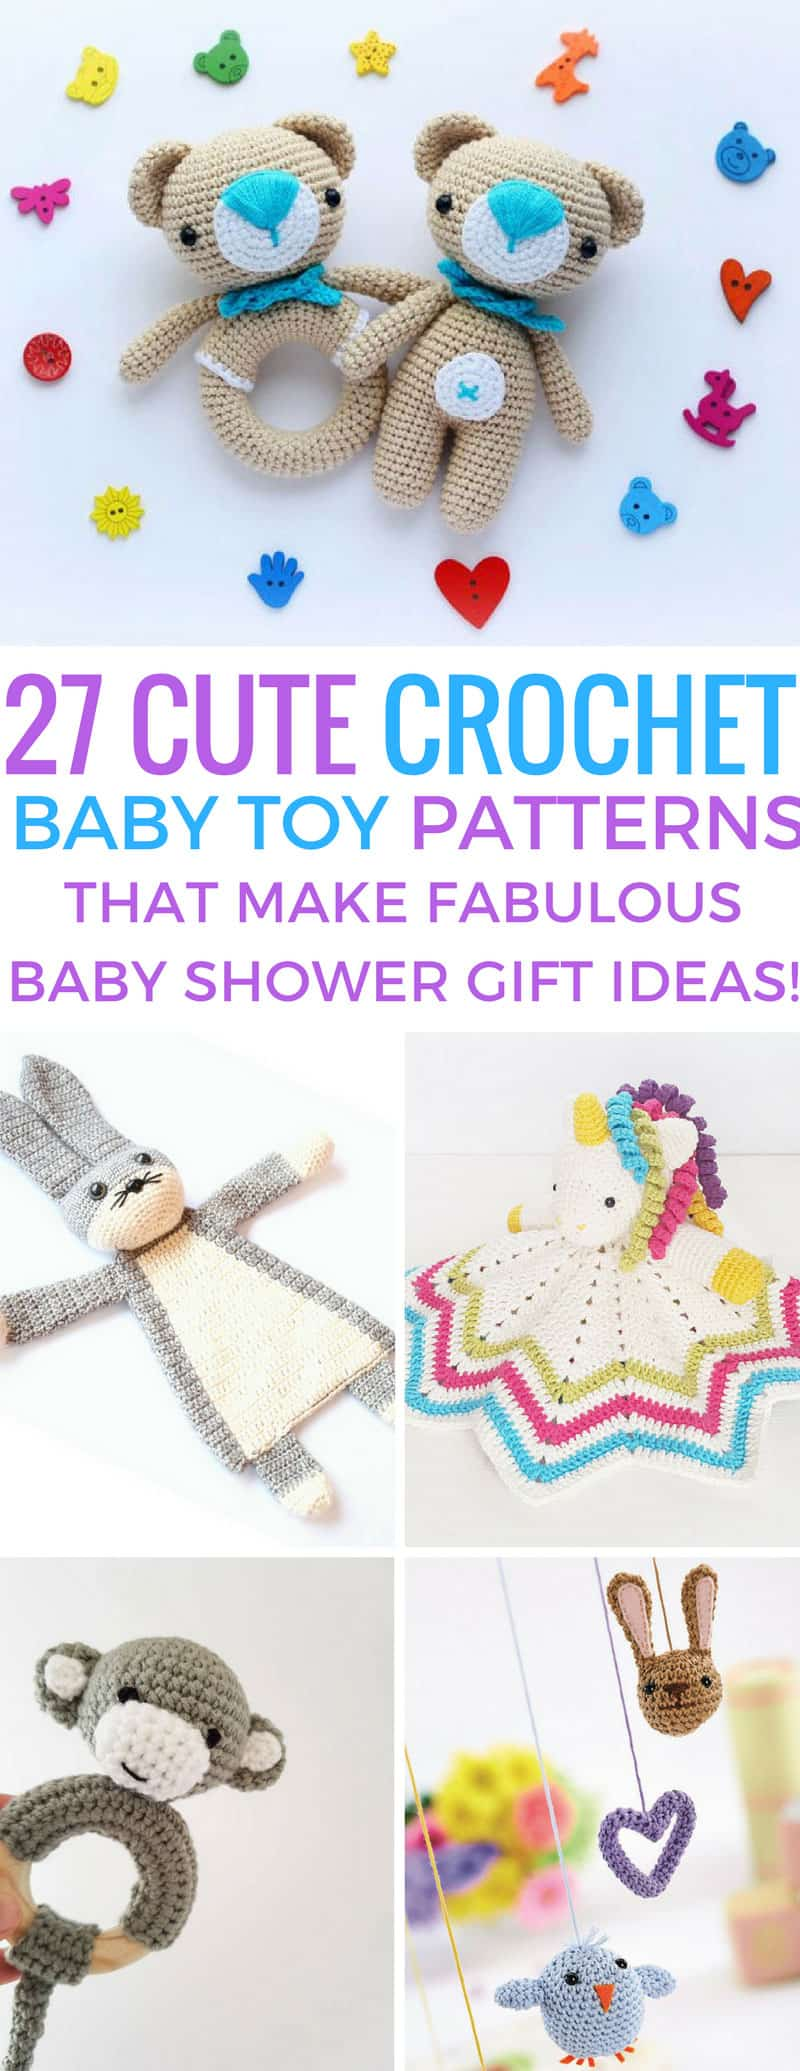 Loving these crochet baby toys - the patterns are adorable! Thanks for sharing!